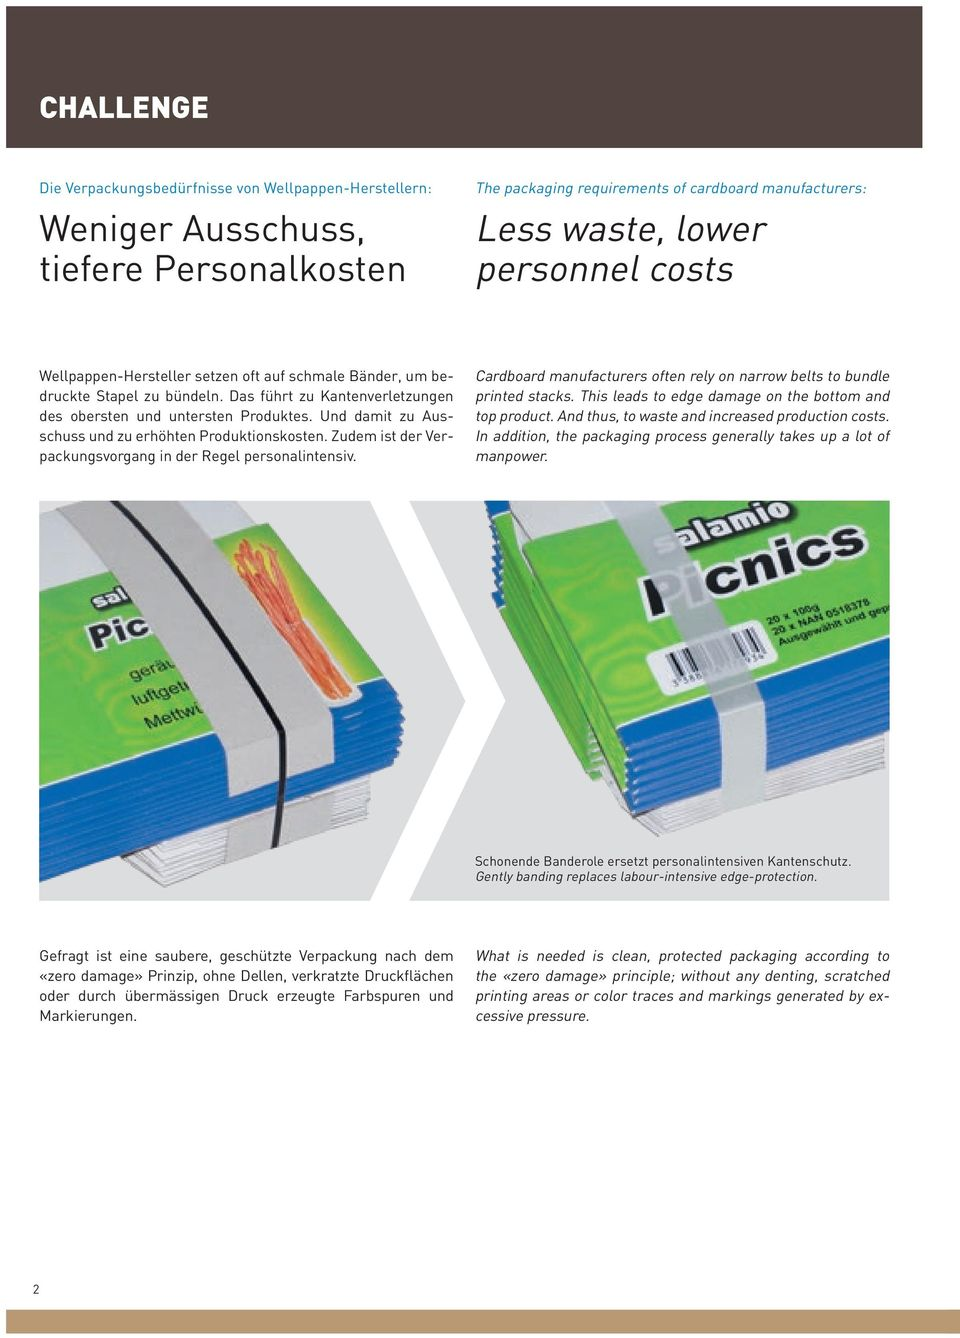 Und damit zu Ausschuss und zu erhöhten Produktionskosten. Zudem ist der Verpackungsvorgang in der Regel personalintensiv. Cardboard manufacturers often rely on narrow belts to bundle printed stacks.